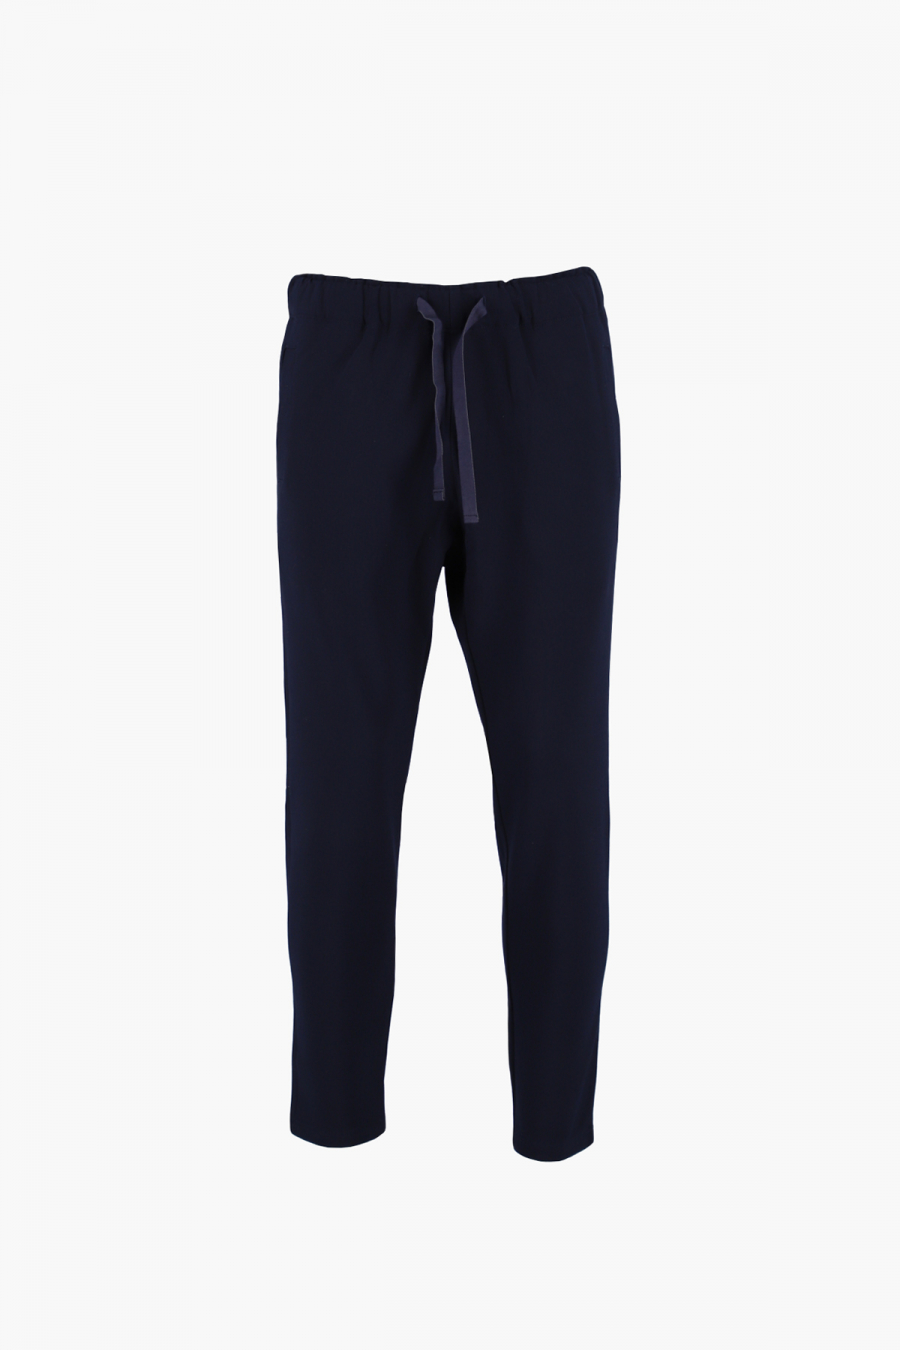 PANTALON TRAINING COLETTE